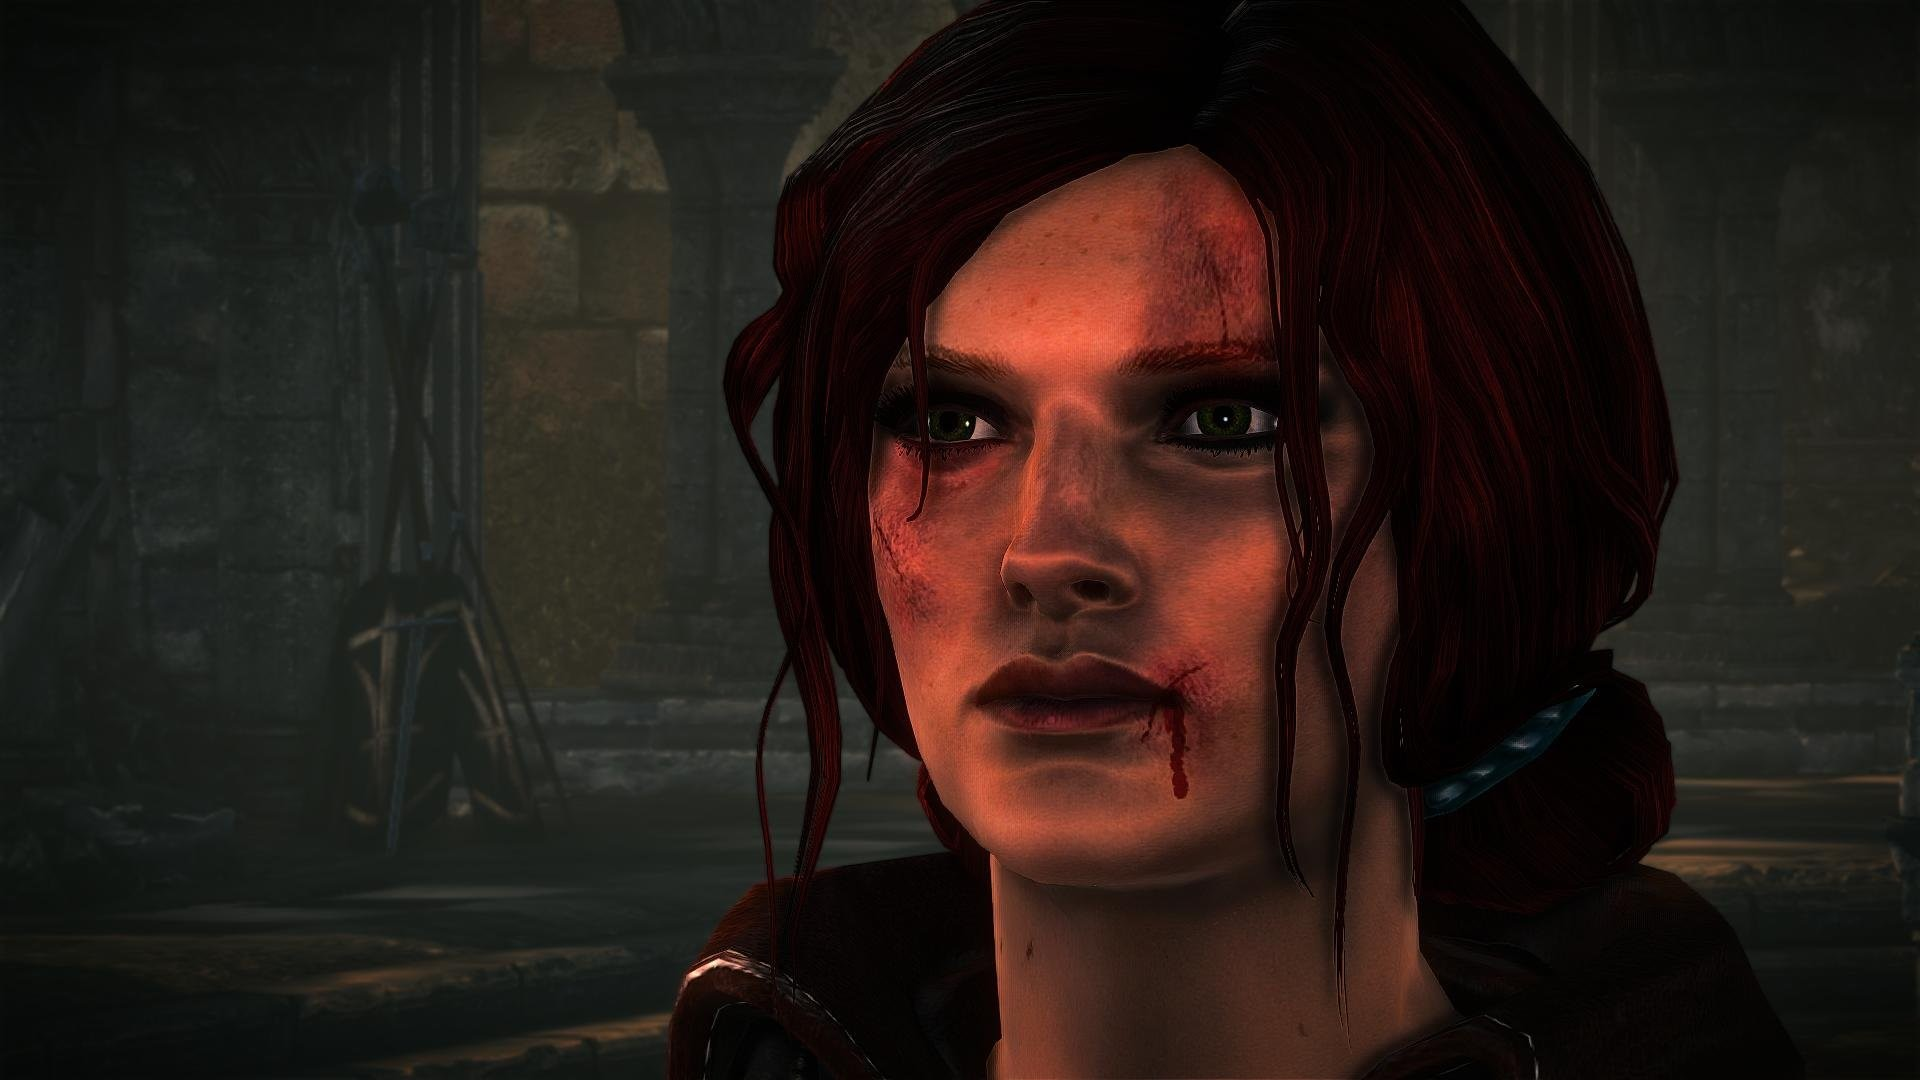 Res: 1920x1080, The Witcher 2 Assassins of Kings Triss Merigold redhead wallpaper       676511   WallpaperUP